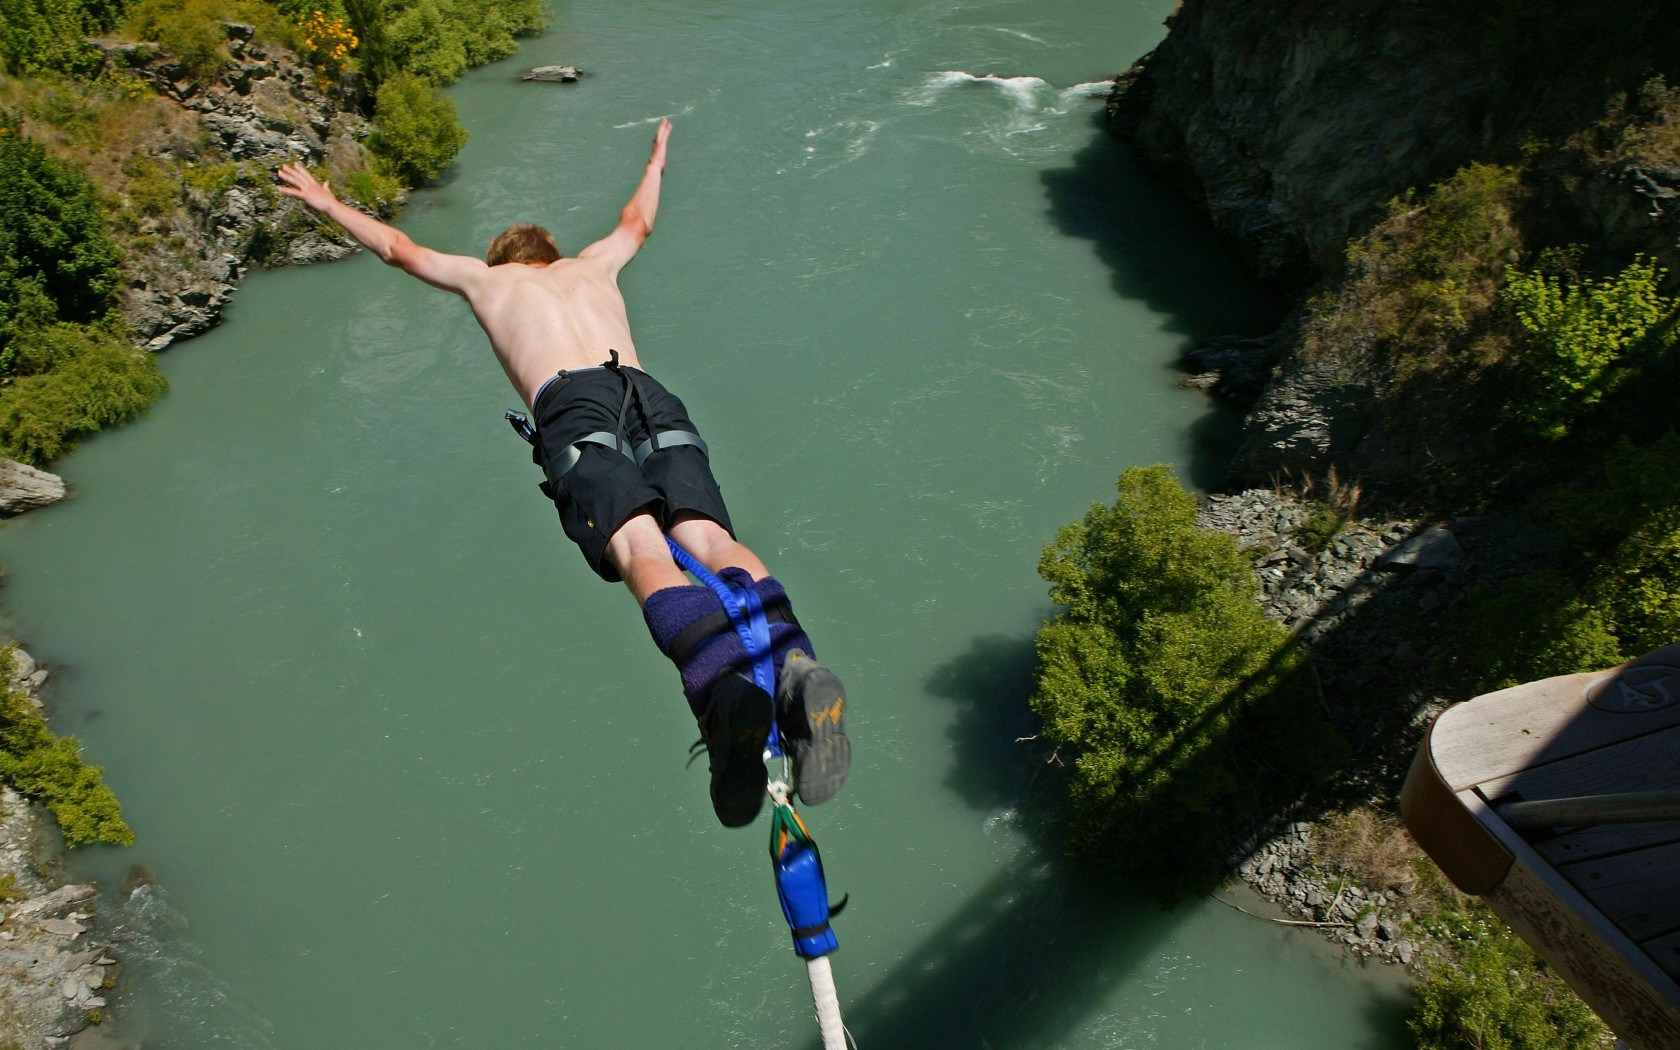 Bungee-Jumping-compressed.jpg